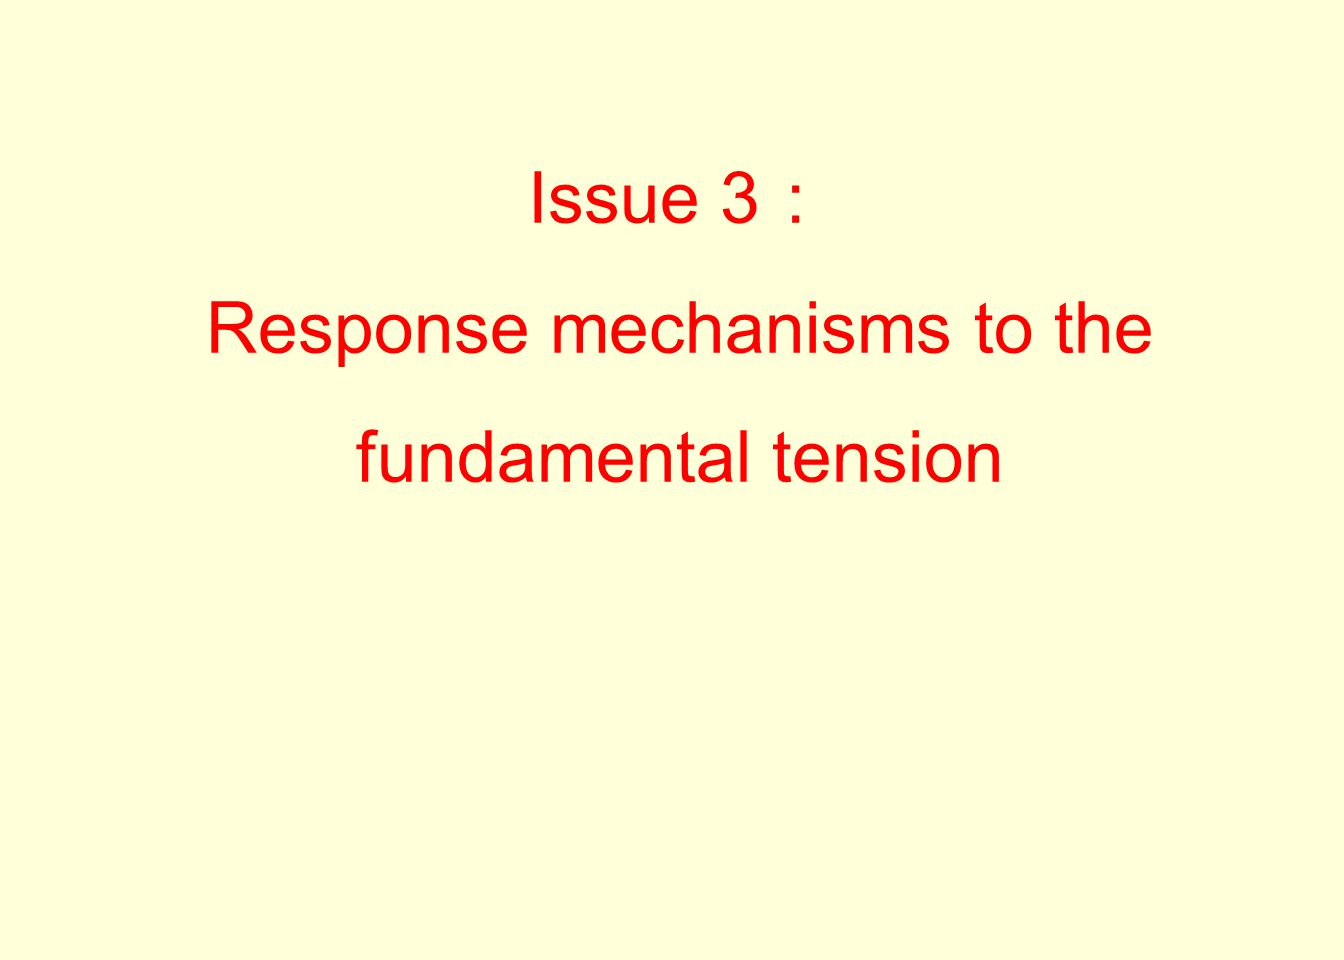 Issue 3: Response mechanisms to the fundamental tension